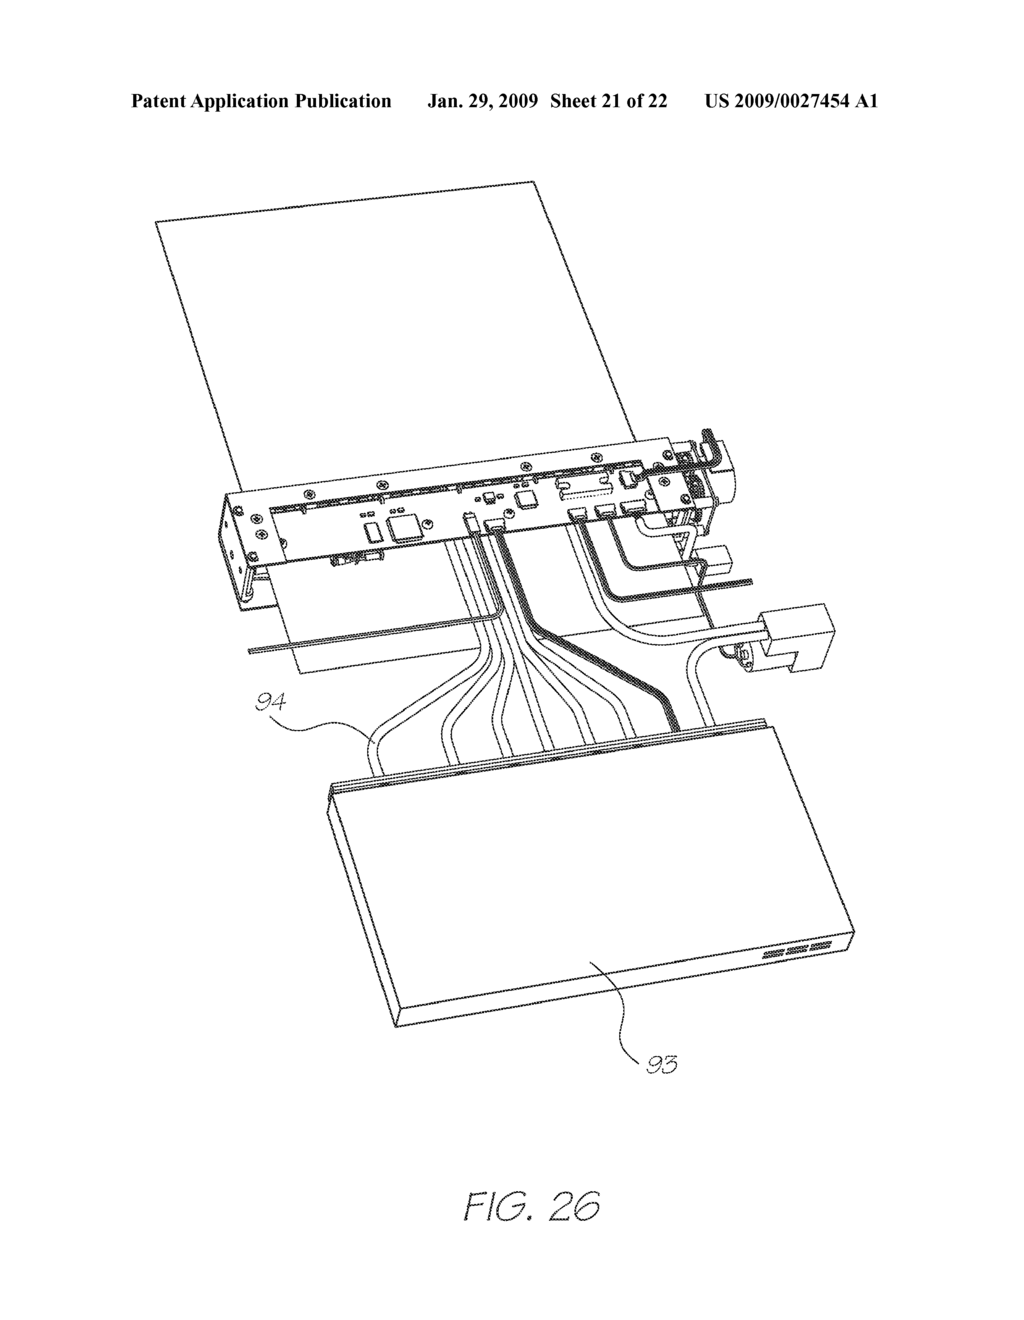 Print Engine Assembly With Chassis And Printed Circuit Board Diagram Schematic Image 22